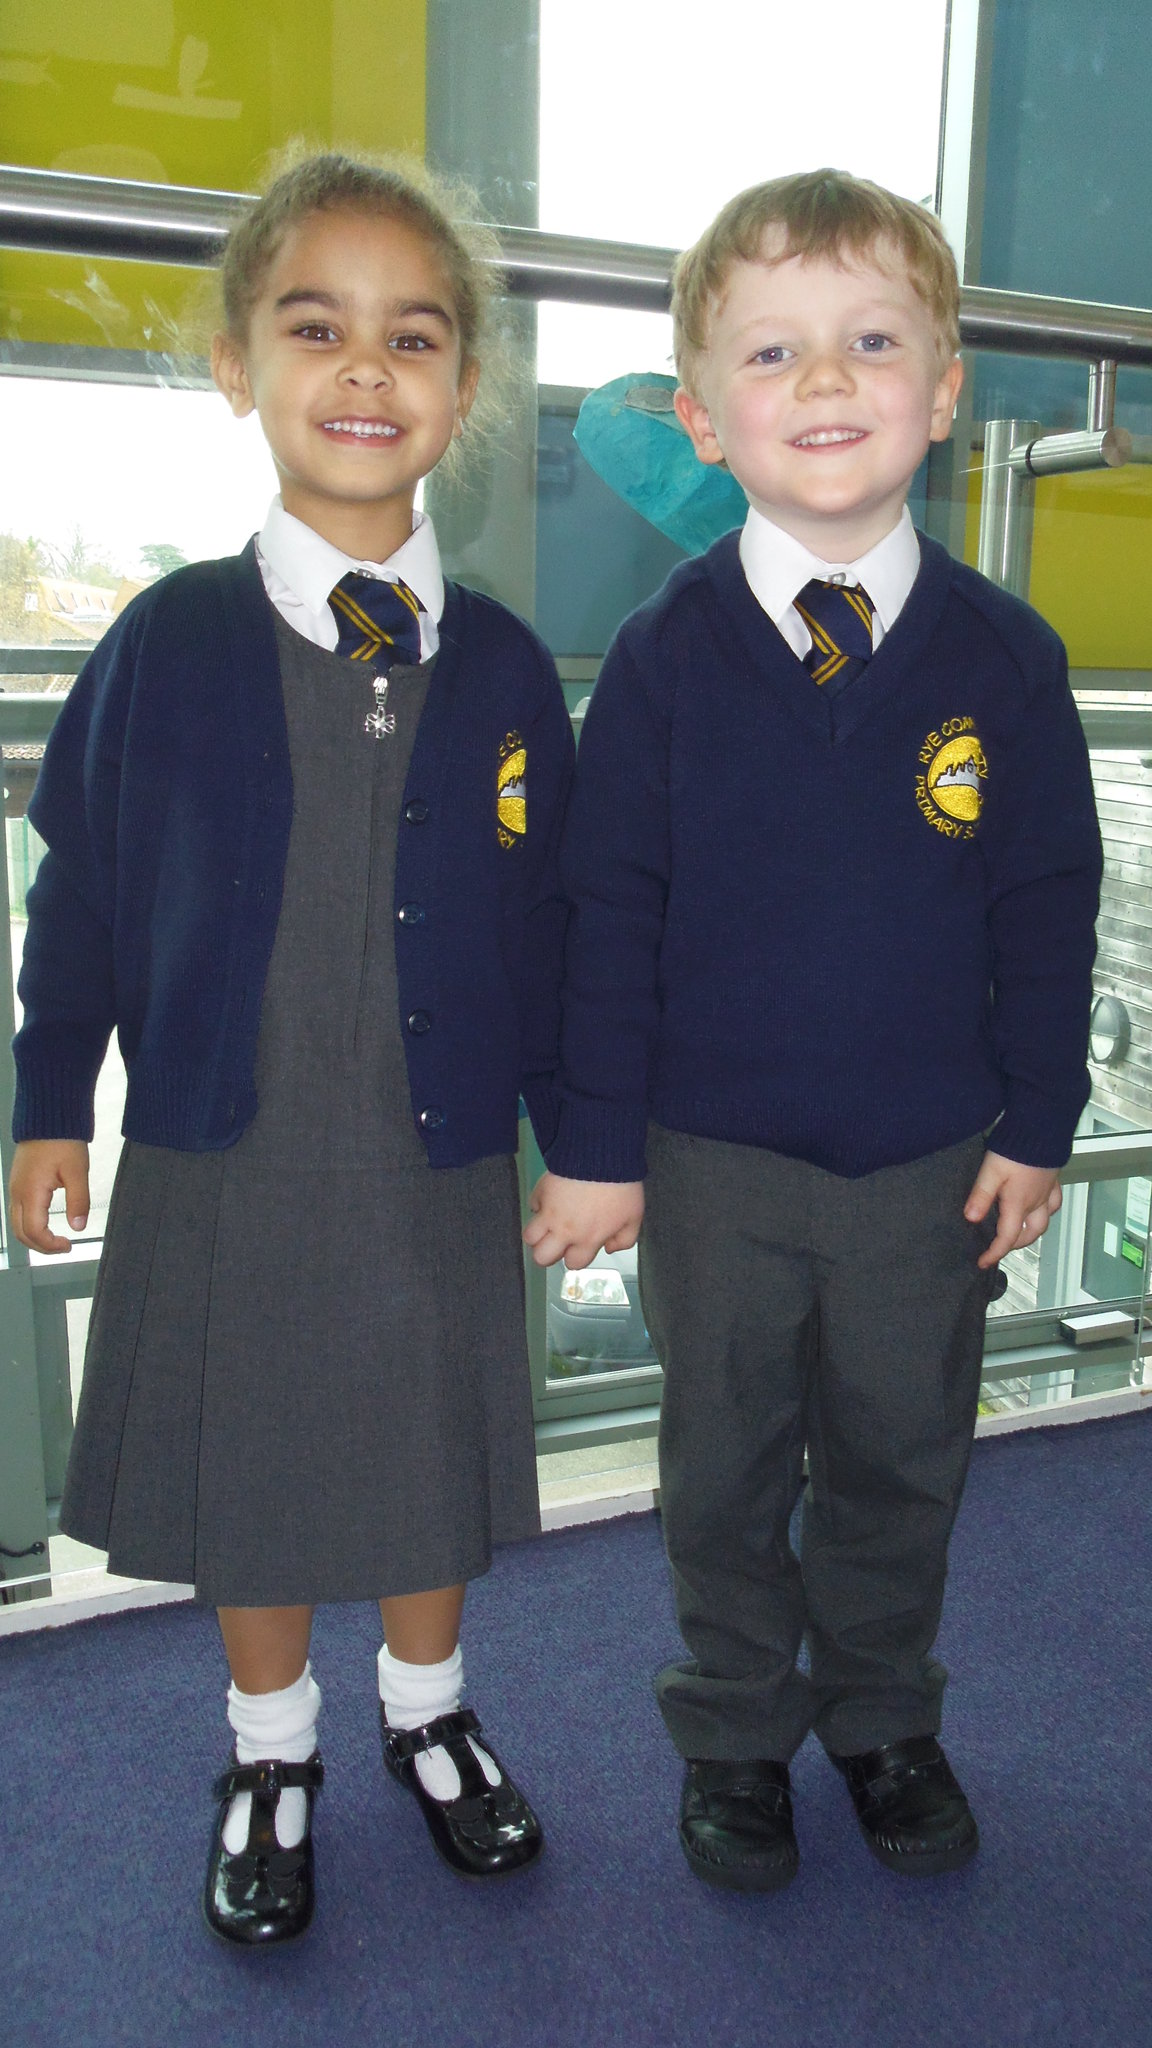 Uniform Rye Community Primary School Aquinas Trust